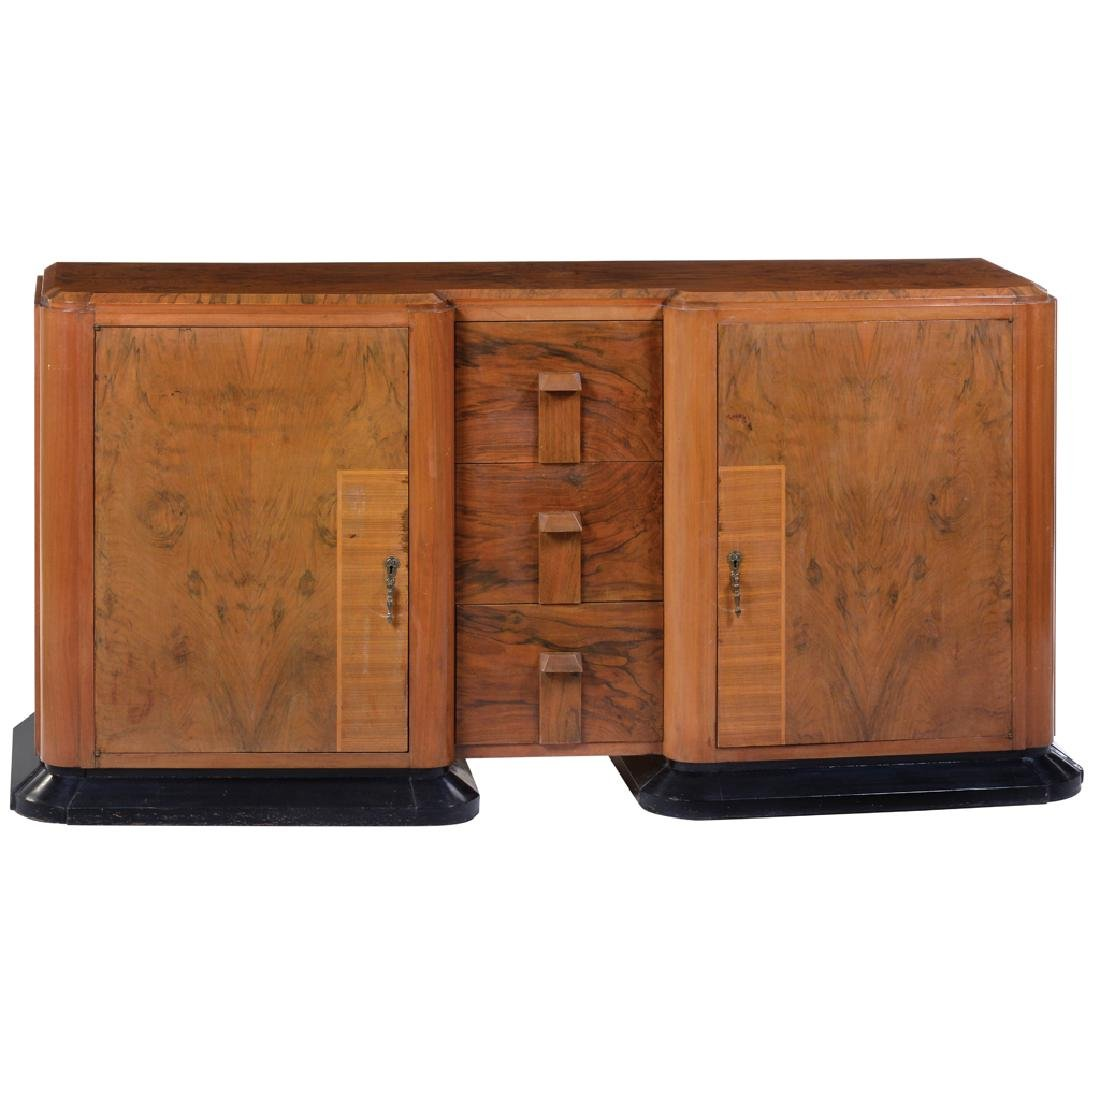 art Deco style root wood bureau with 2 doors, 3 drawers